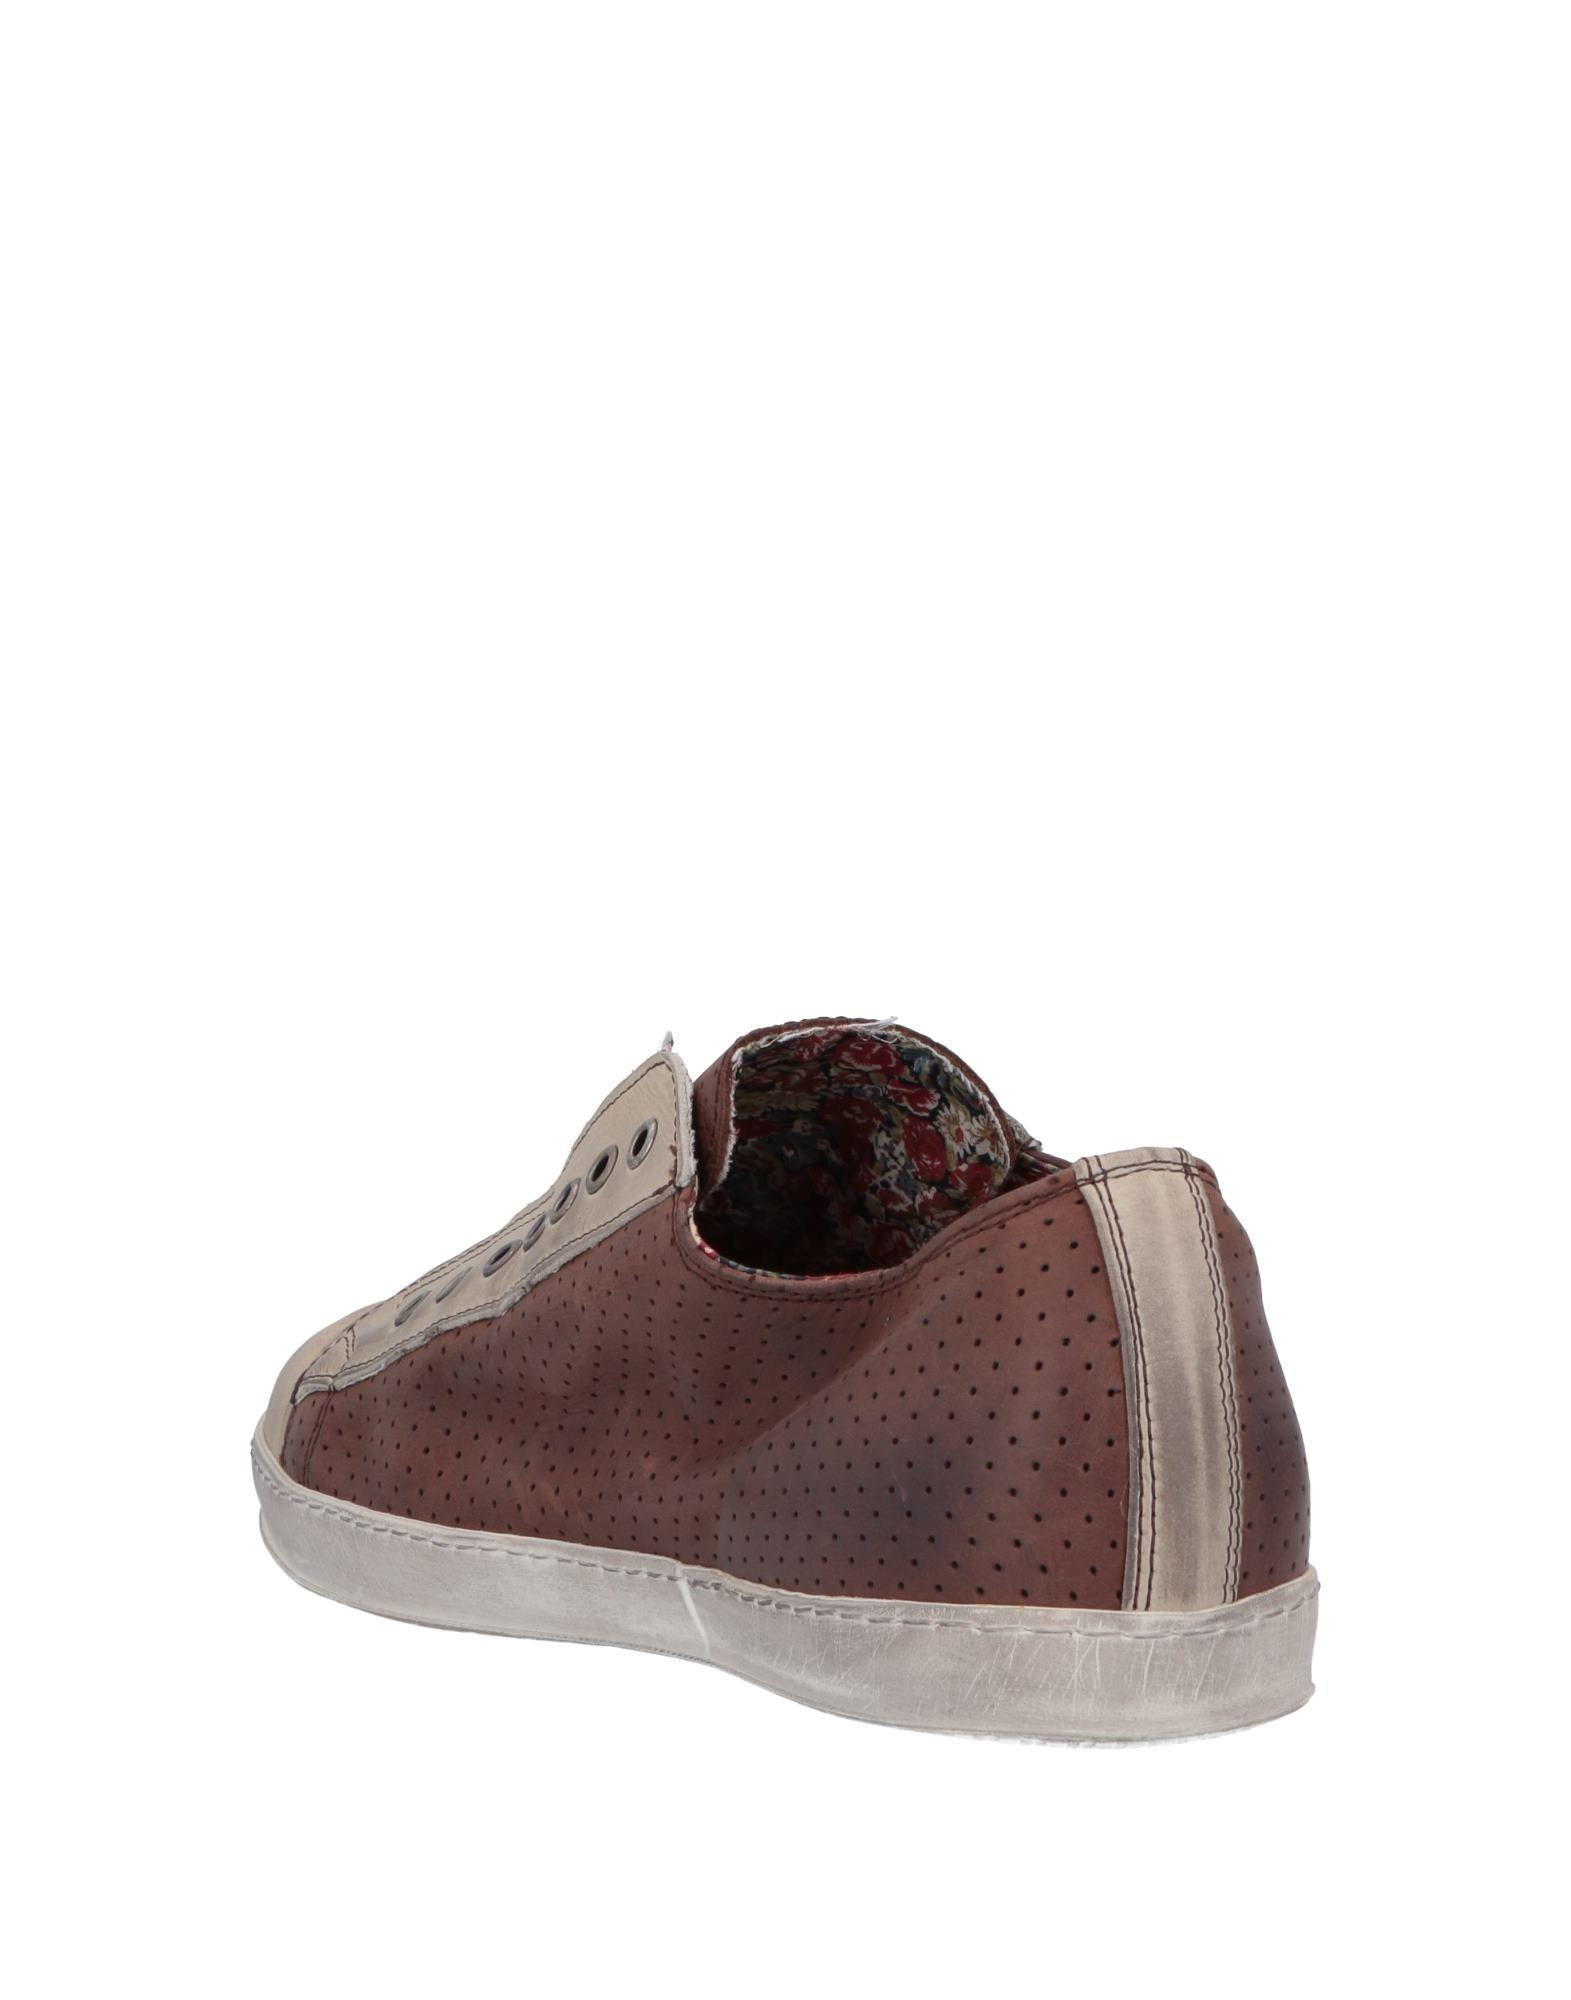 Lyst Low Sneakers Lecrown Tops amp; Brown In 86wa8pq